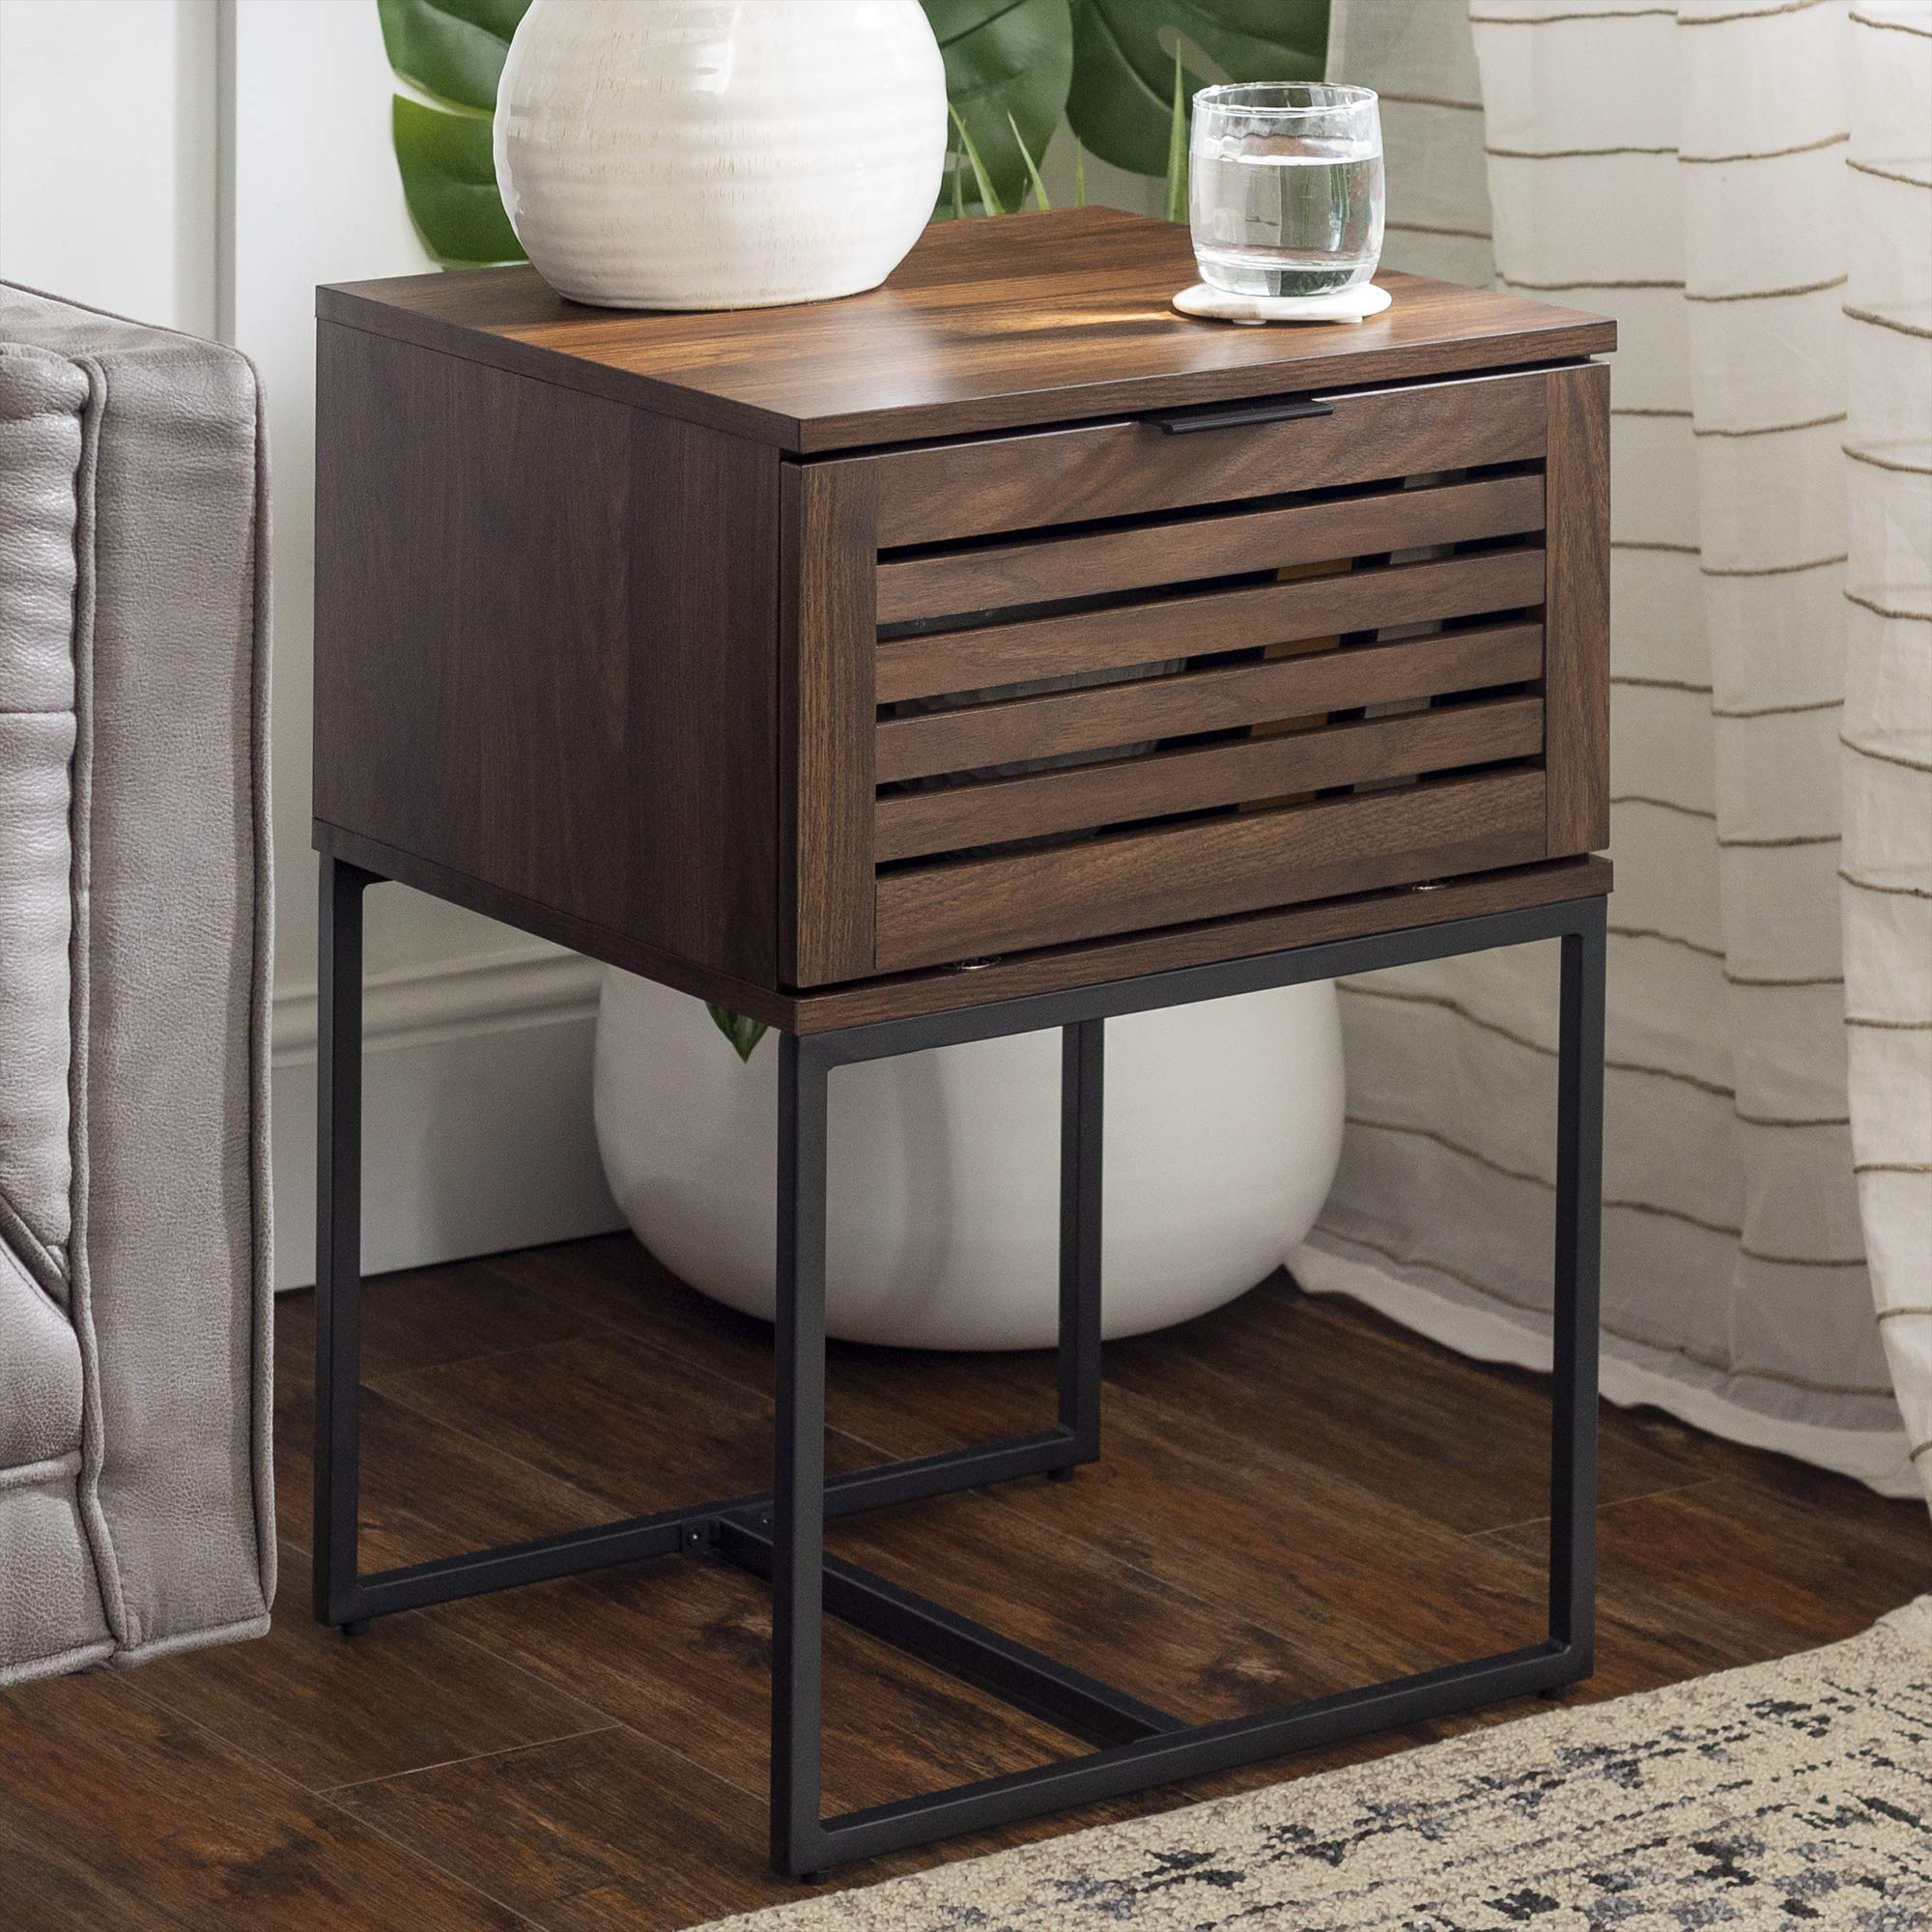 Walker Edison Modern Slatted Wood Square Side Accent Living Room Storage Drawer Small End Table, 18 Inch, Dark Walnut